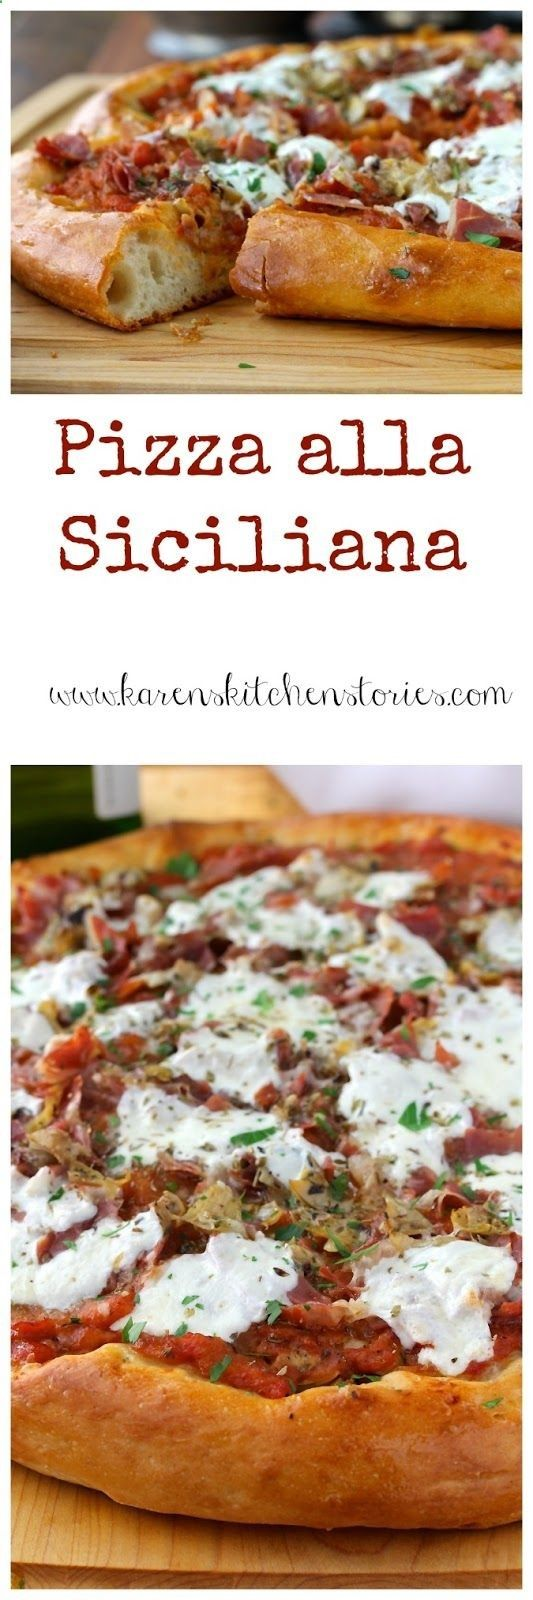 This Pizza alla Siciliana is loaded with a light and fresh sauce, as well as the flavors of anchovies, roasted artichoke hearts, and prosciutto. Its topped with thin slices of fresh mozzarella cheese. From Karens Kitchen Stories